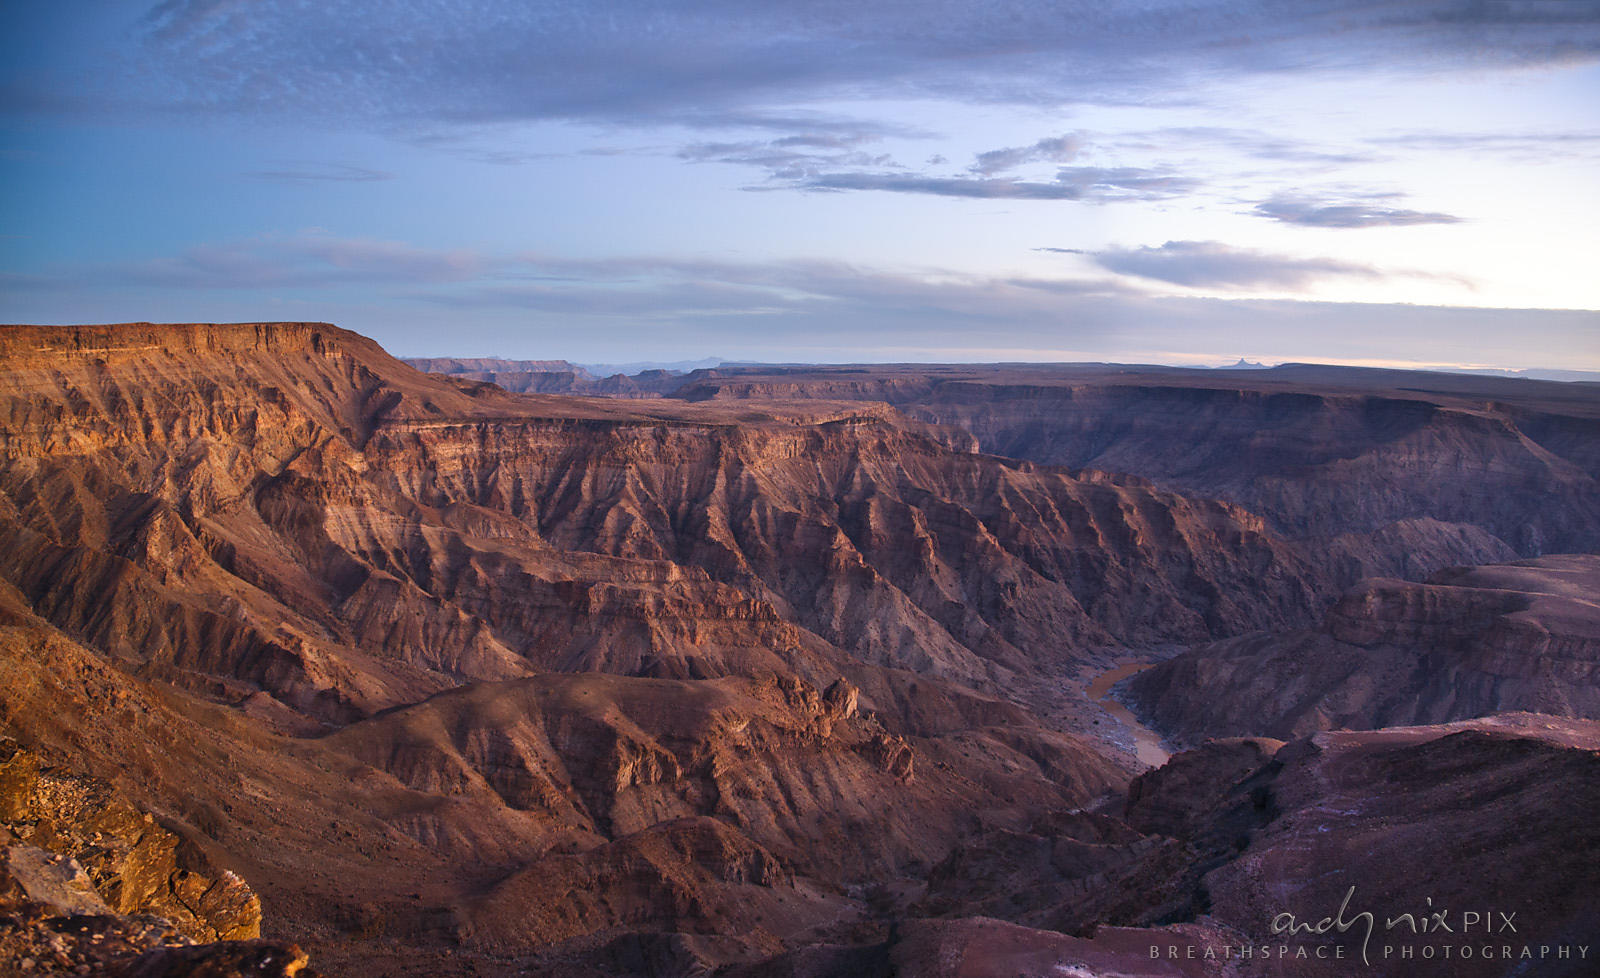 View of a large, deep, desert canyon with a muddy brown river at the bottom at dusk